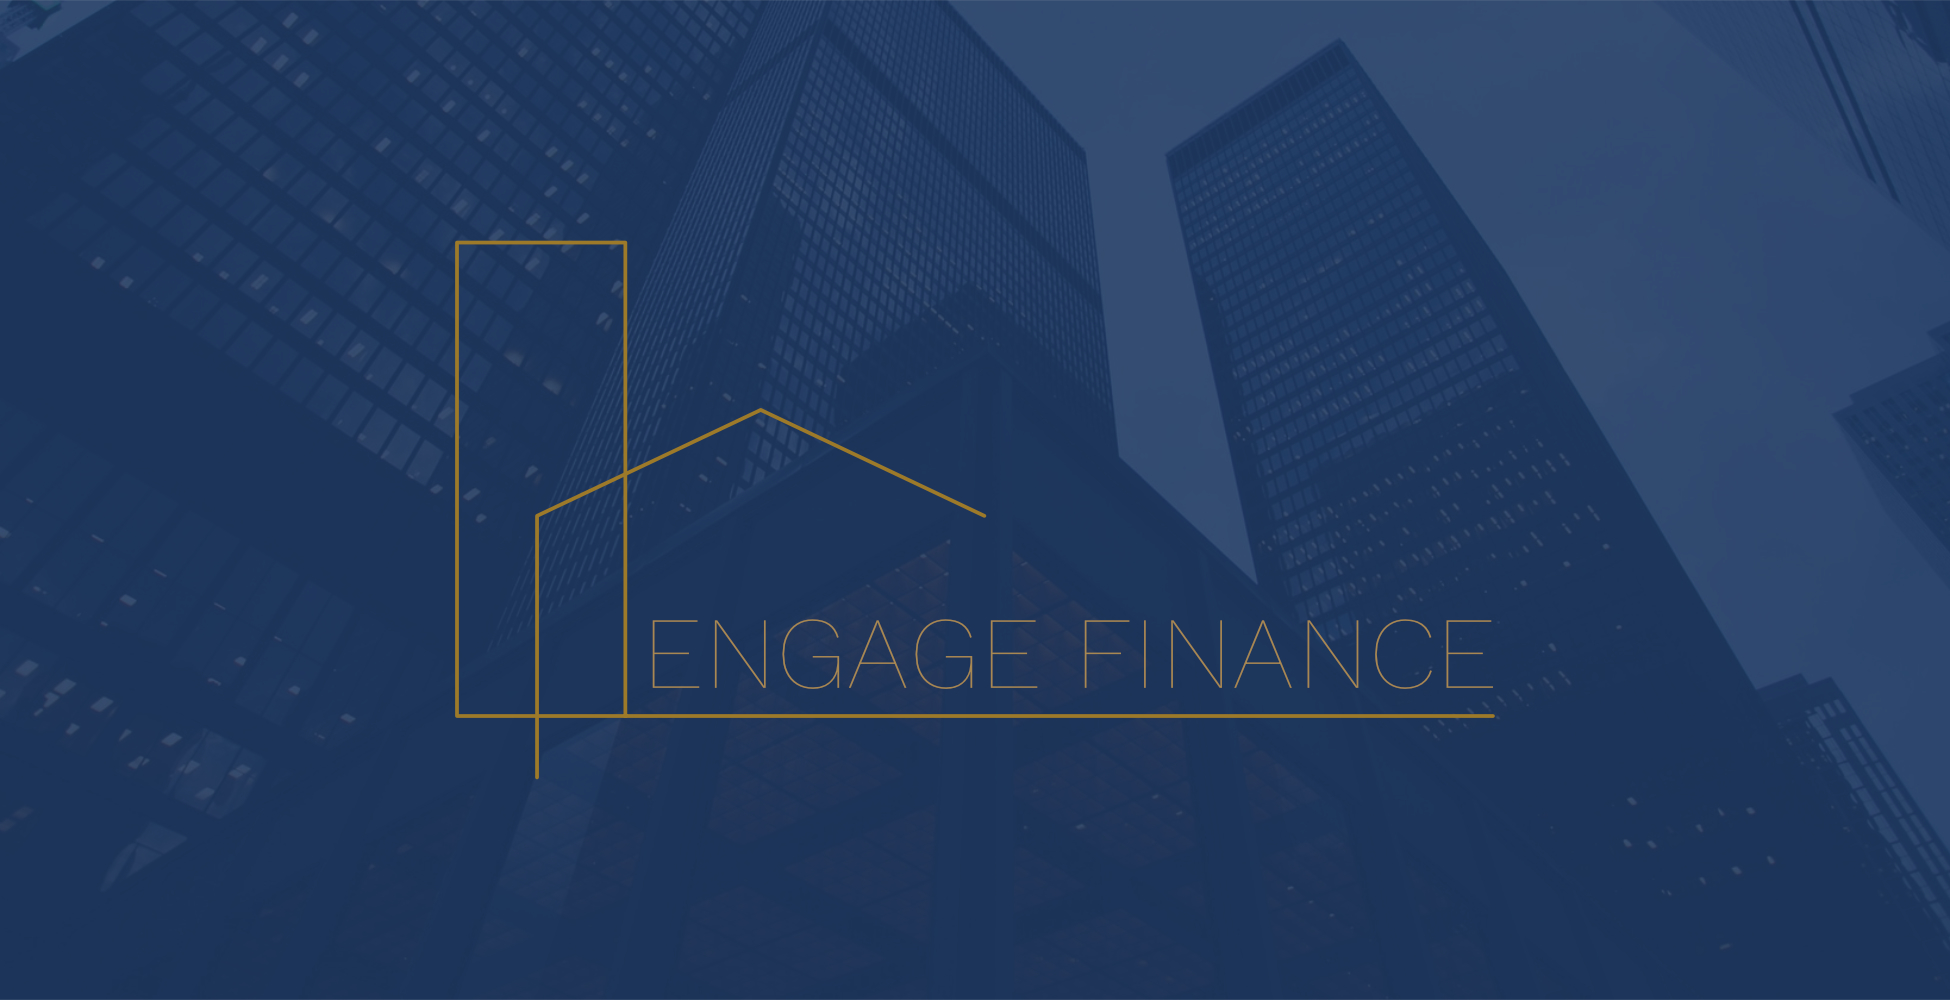 Engage Finance Desktop